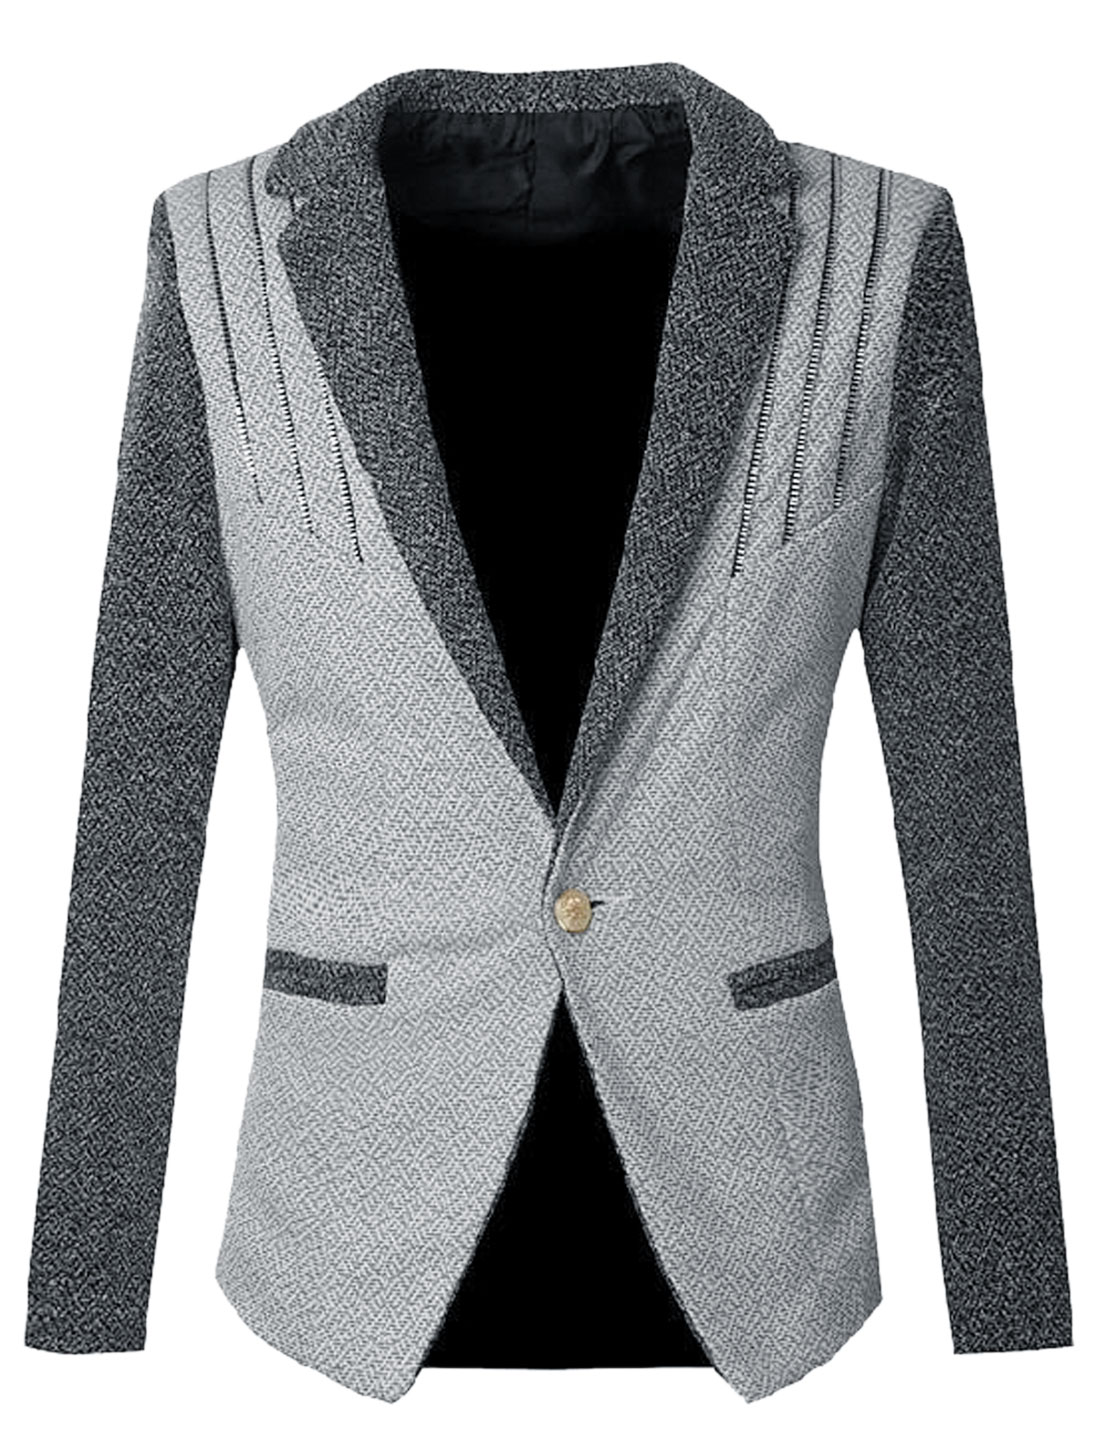 Men One Button Closure Split Back Casual Blazer Jacket Light Gray S